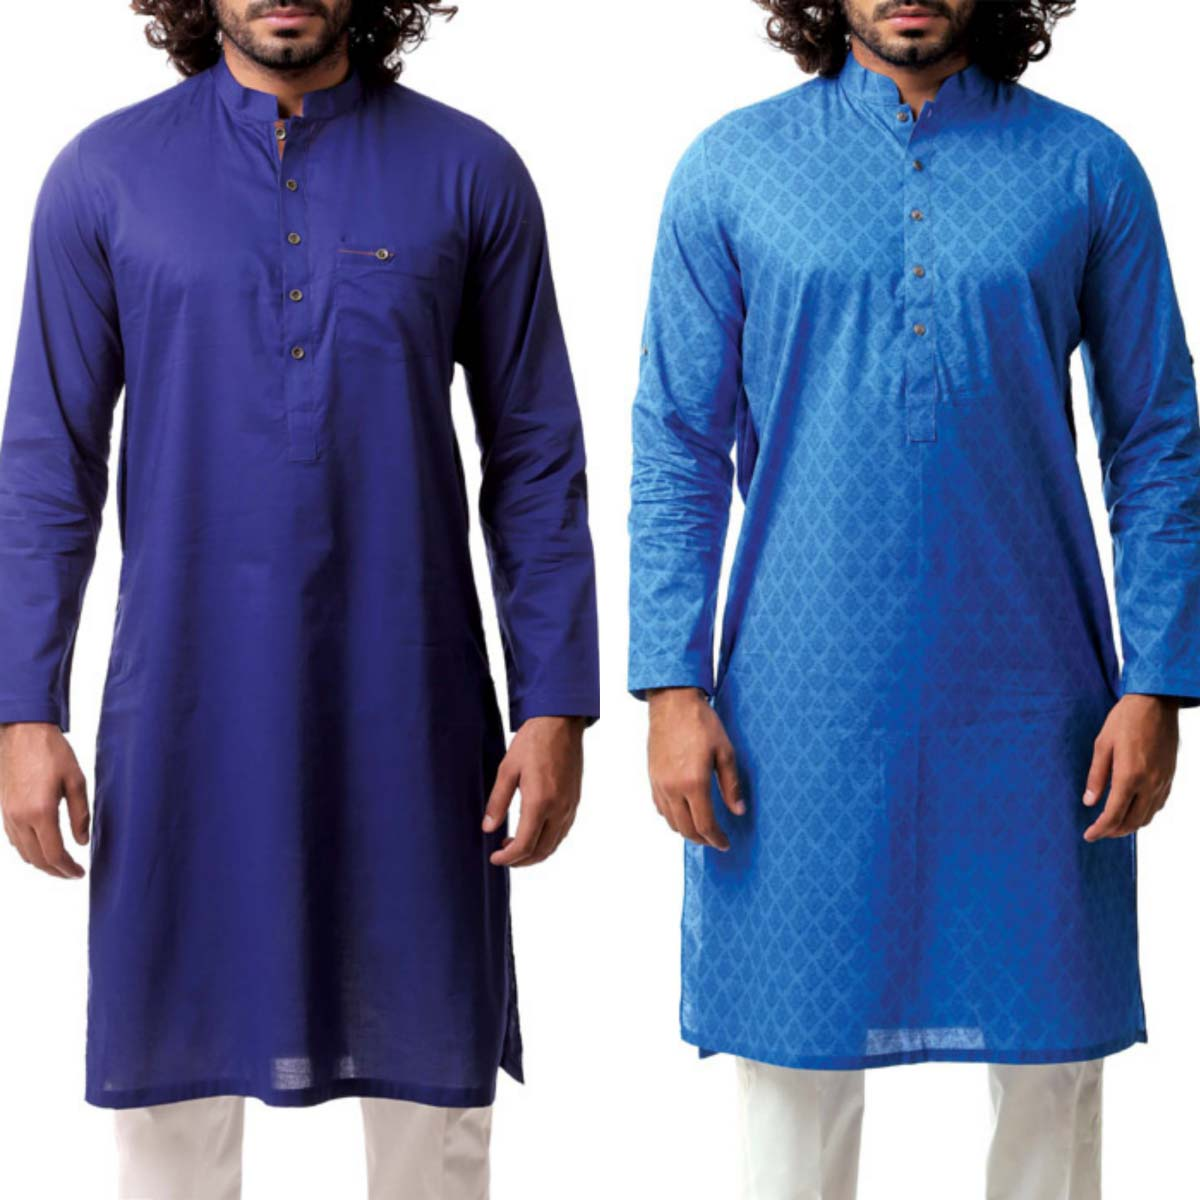 Chinyere mens wear dresses